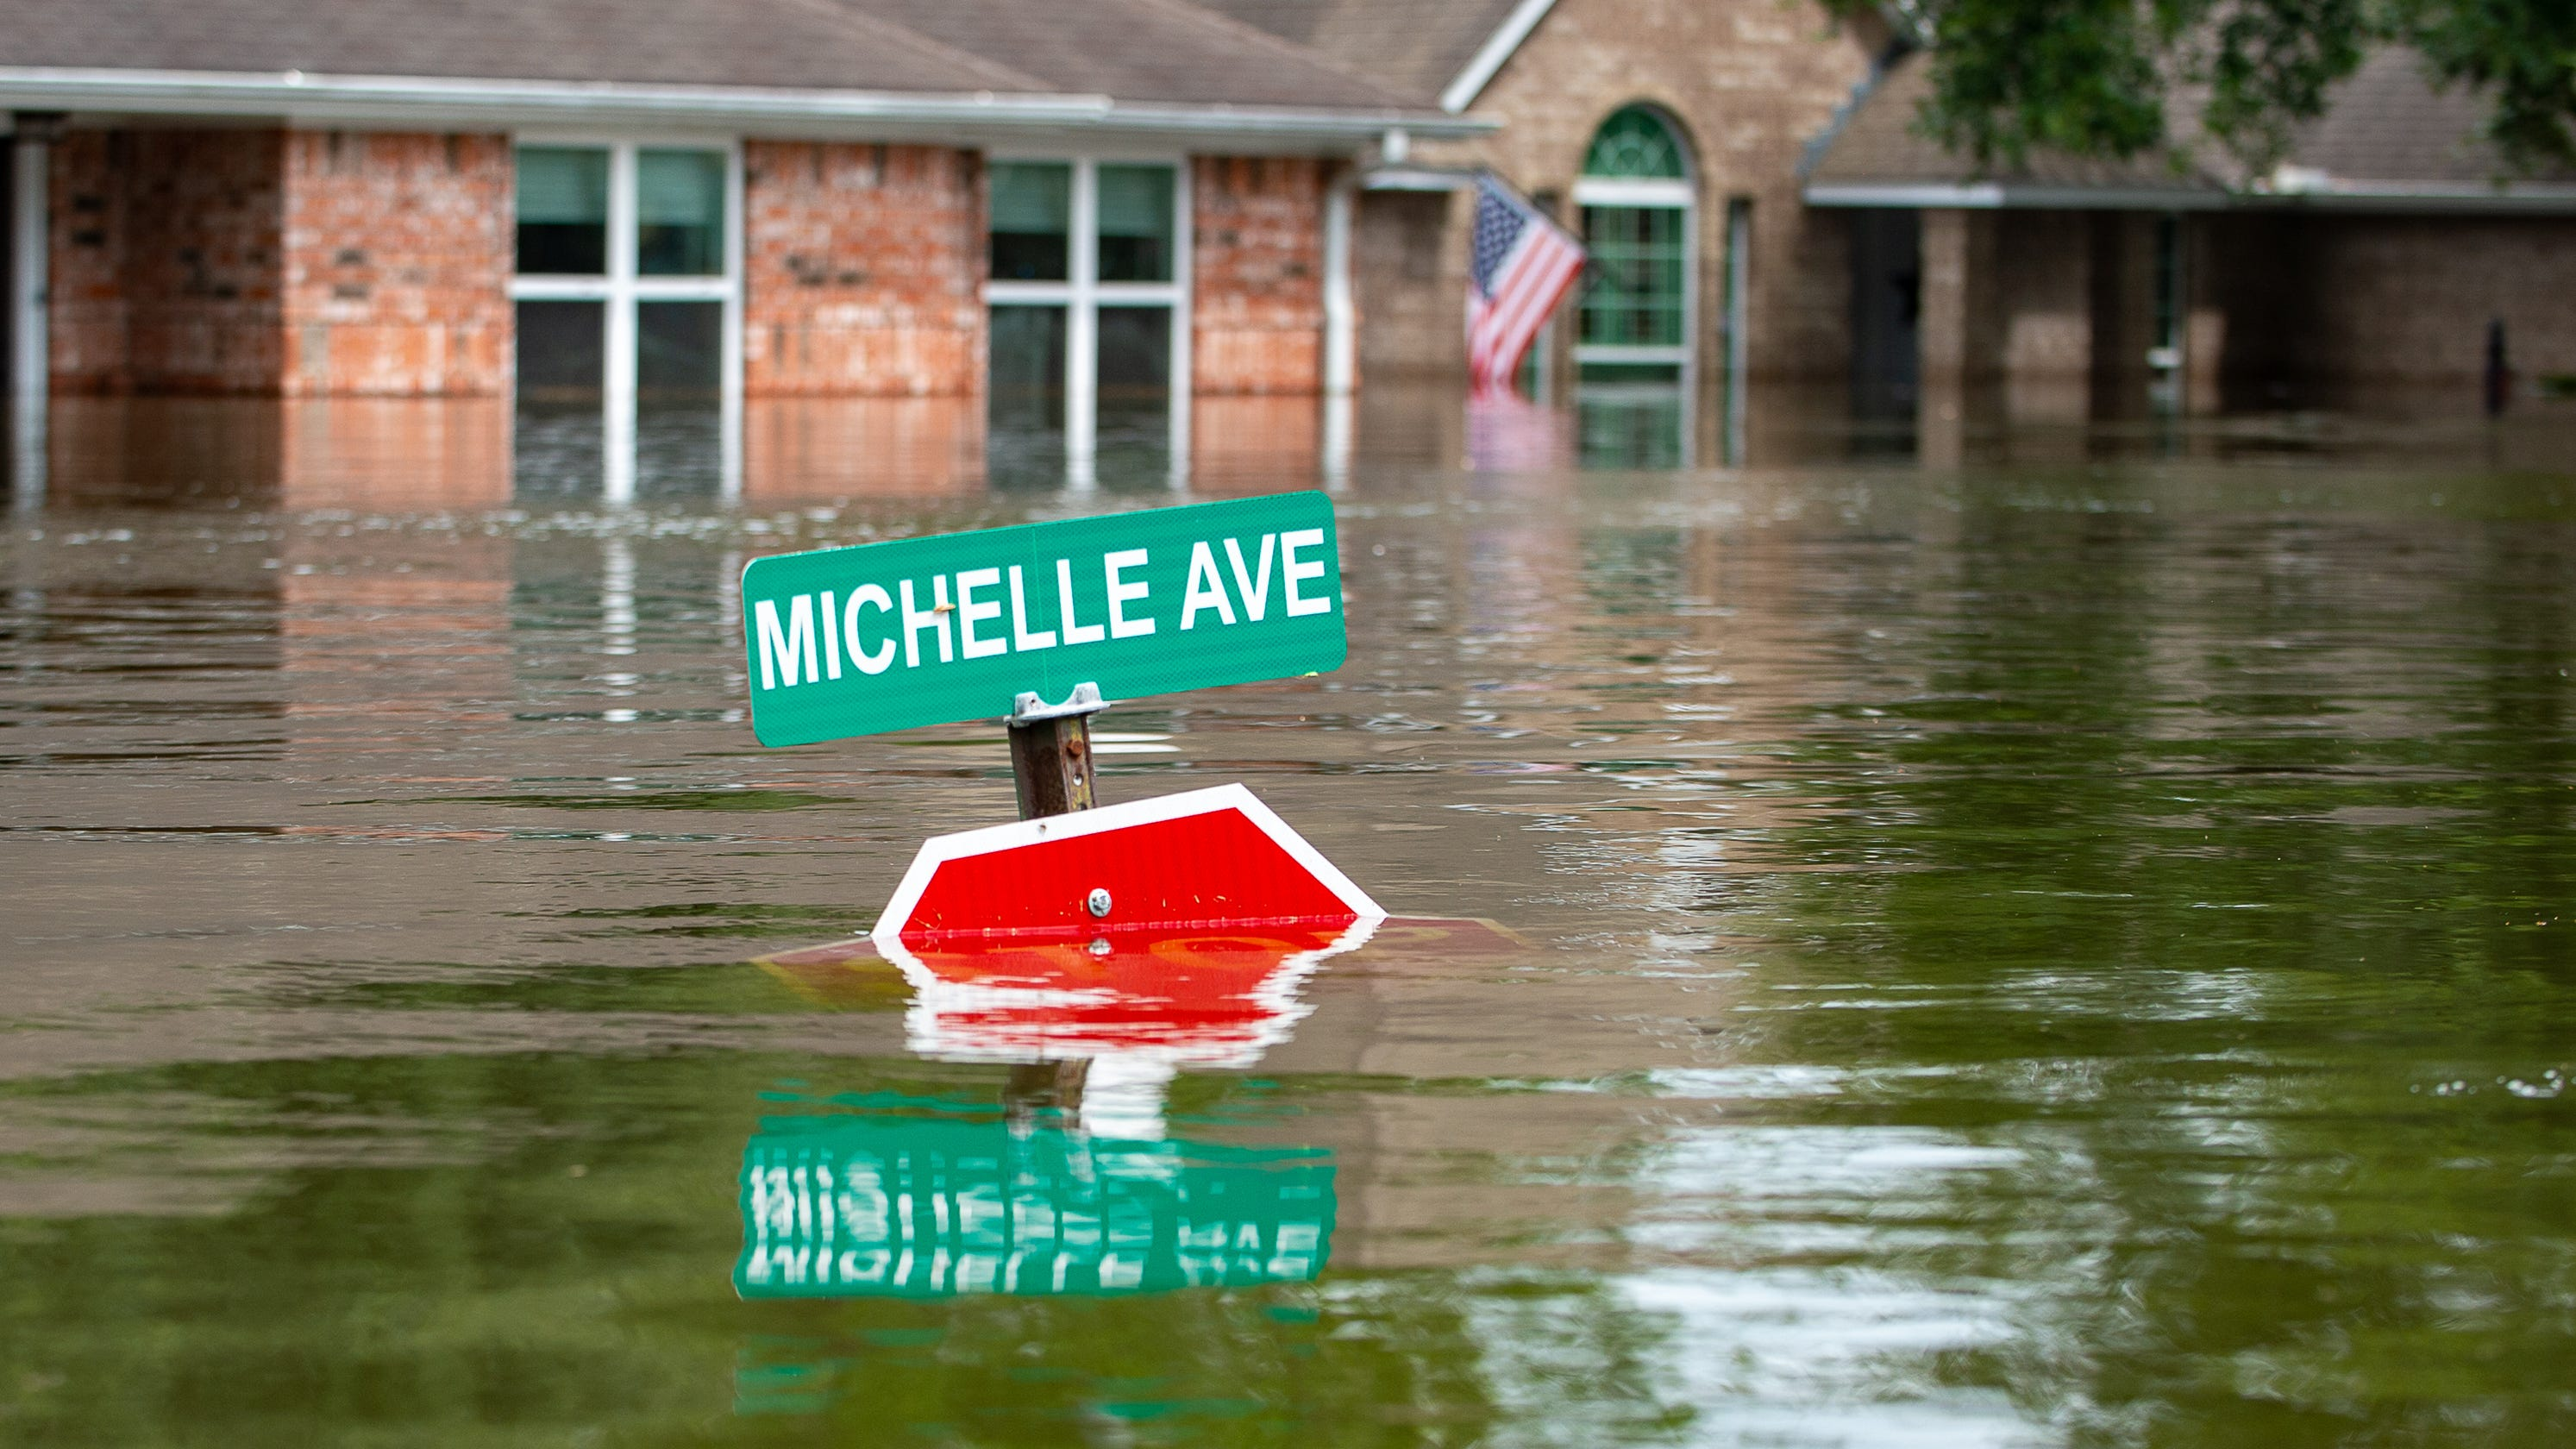 5 deaths now linked to flooding in Texas after Tropical Storm Imelda